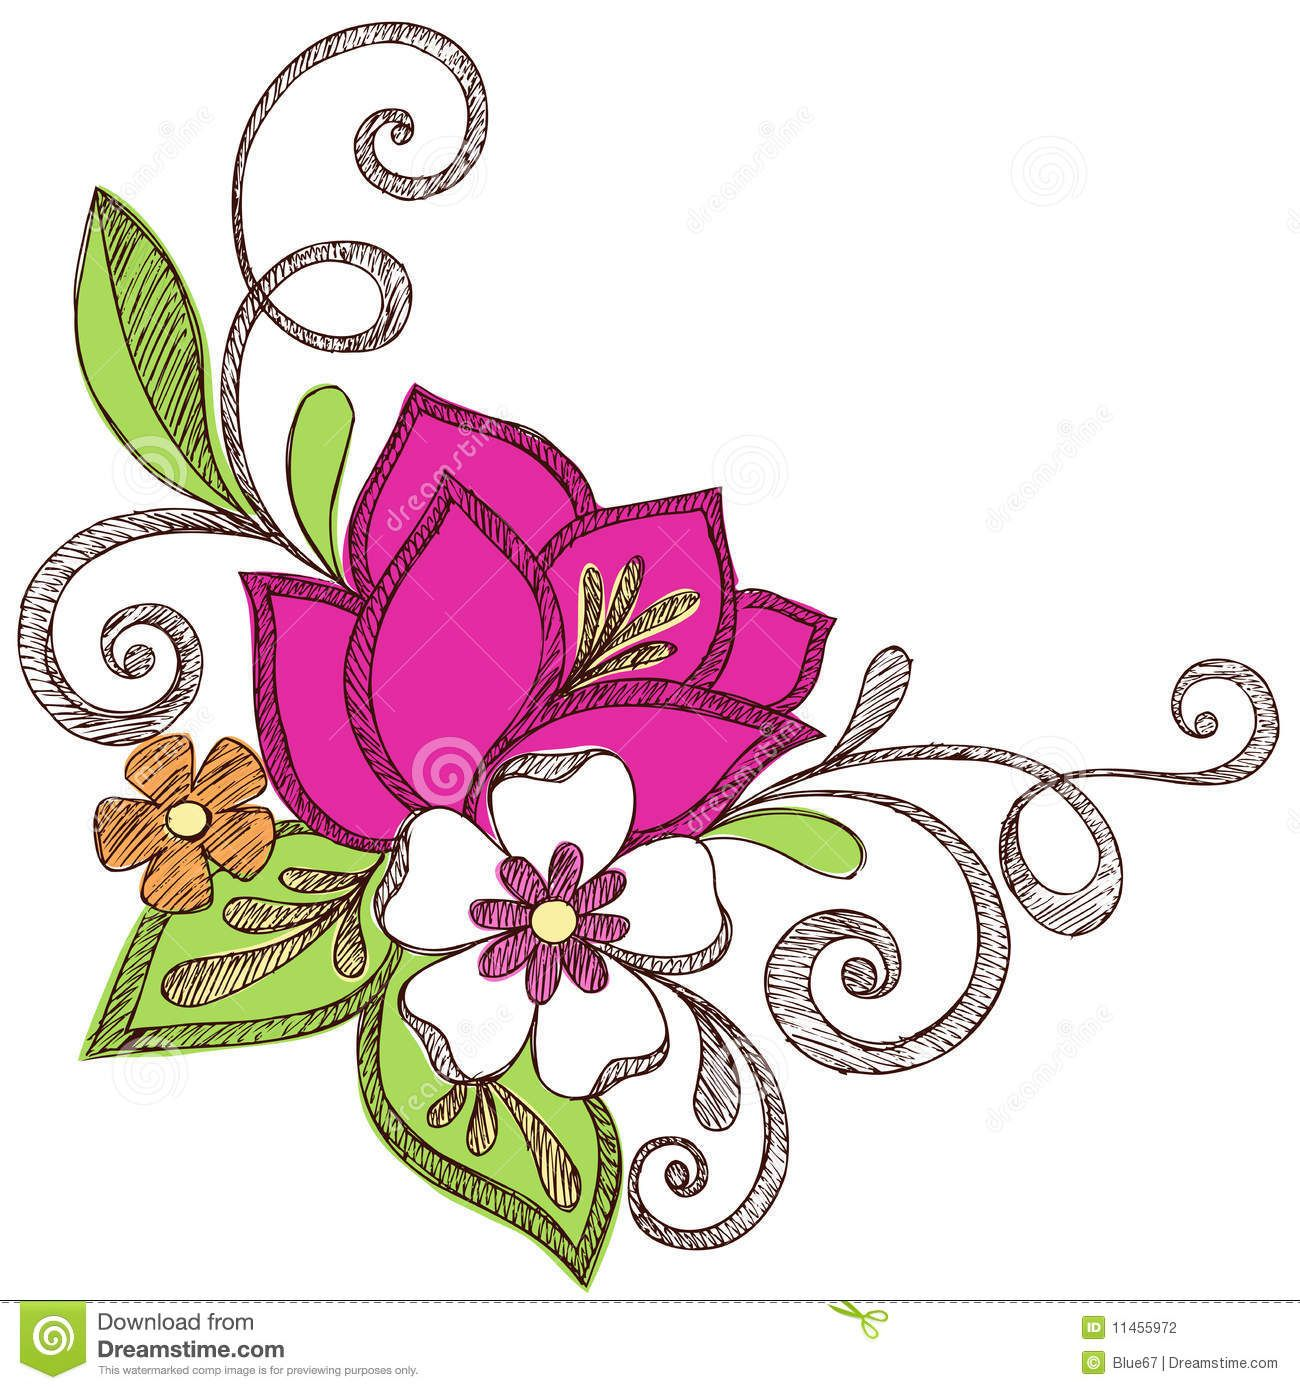 DIBUJOS DE flores mexicanas  Google Search  Bordado  Pinterest